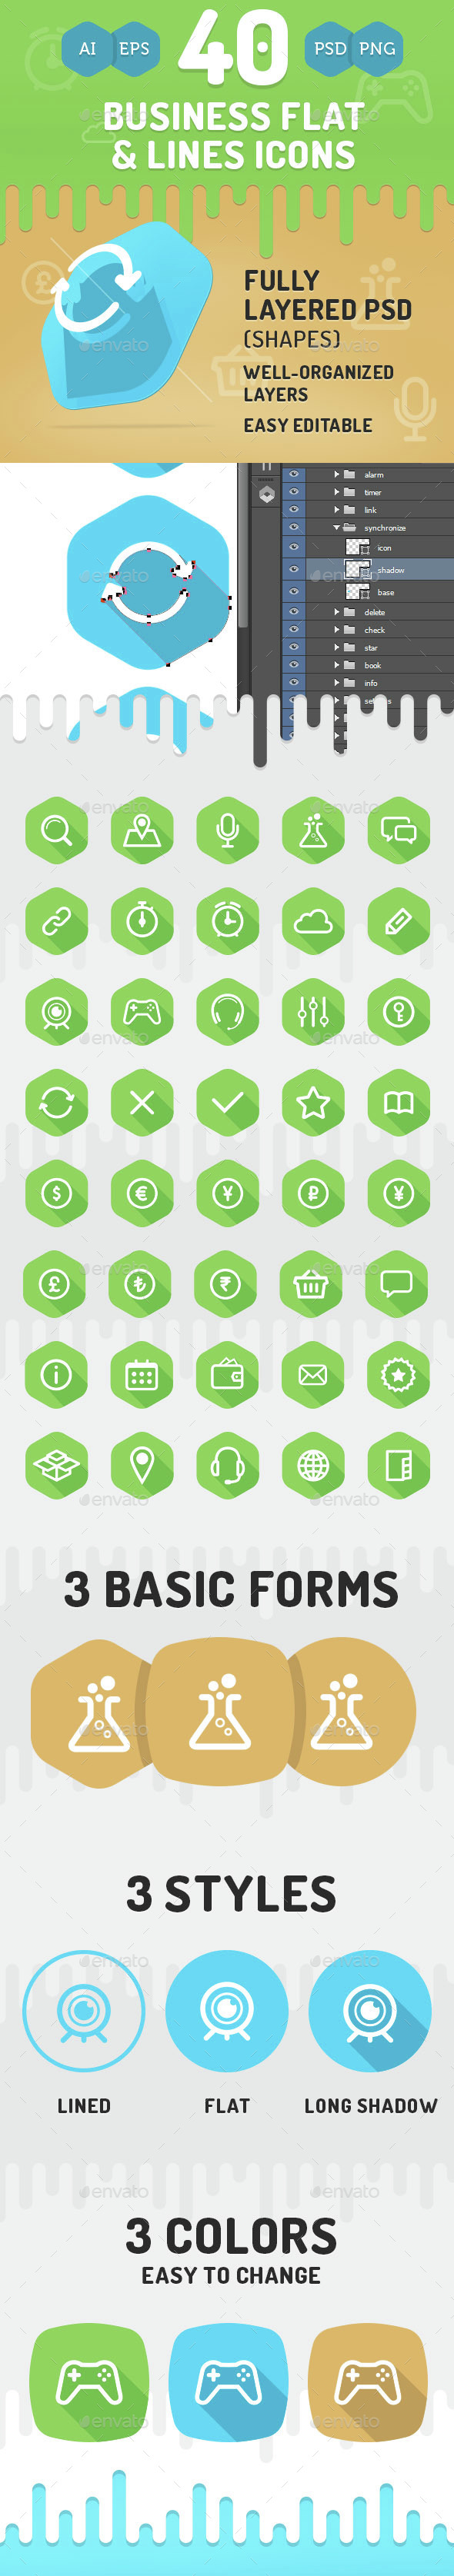 40 Business Flat & Lines Icons - Business Icons